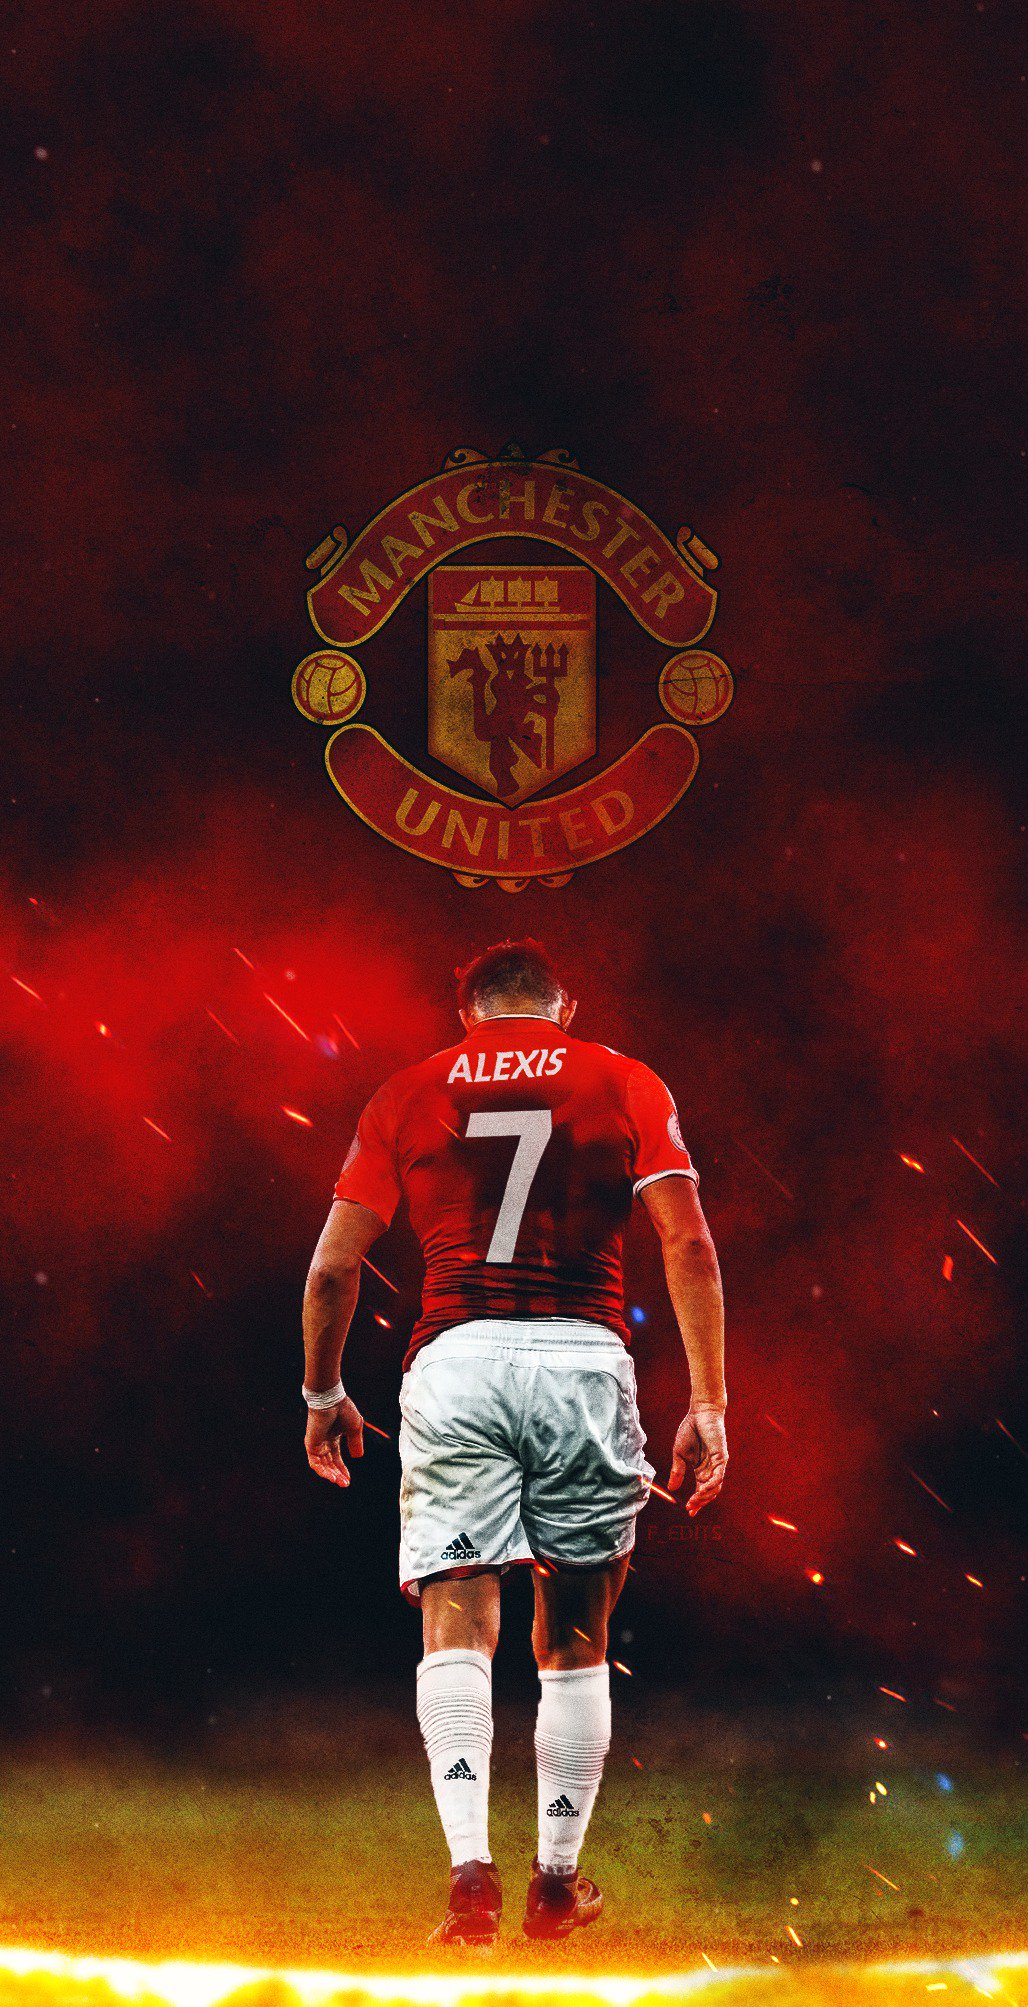 Alexis Sanchez Hd Mobile Wallpapers At Manchester United Man Utd Core